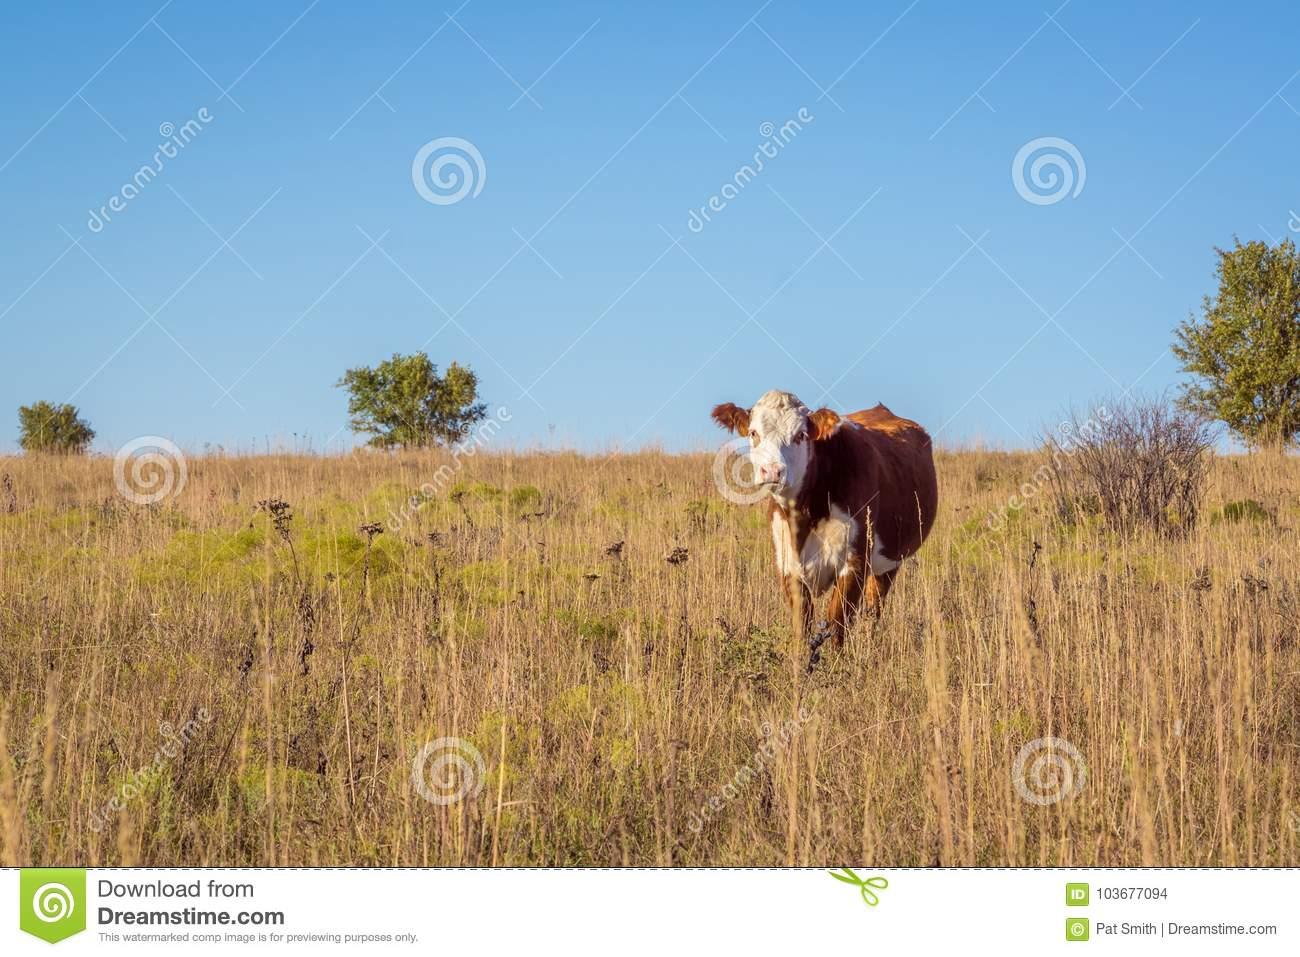 Hereford cow in pasture